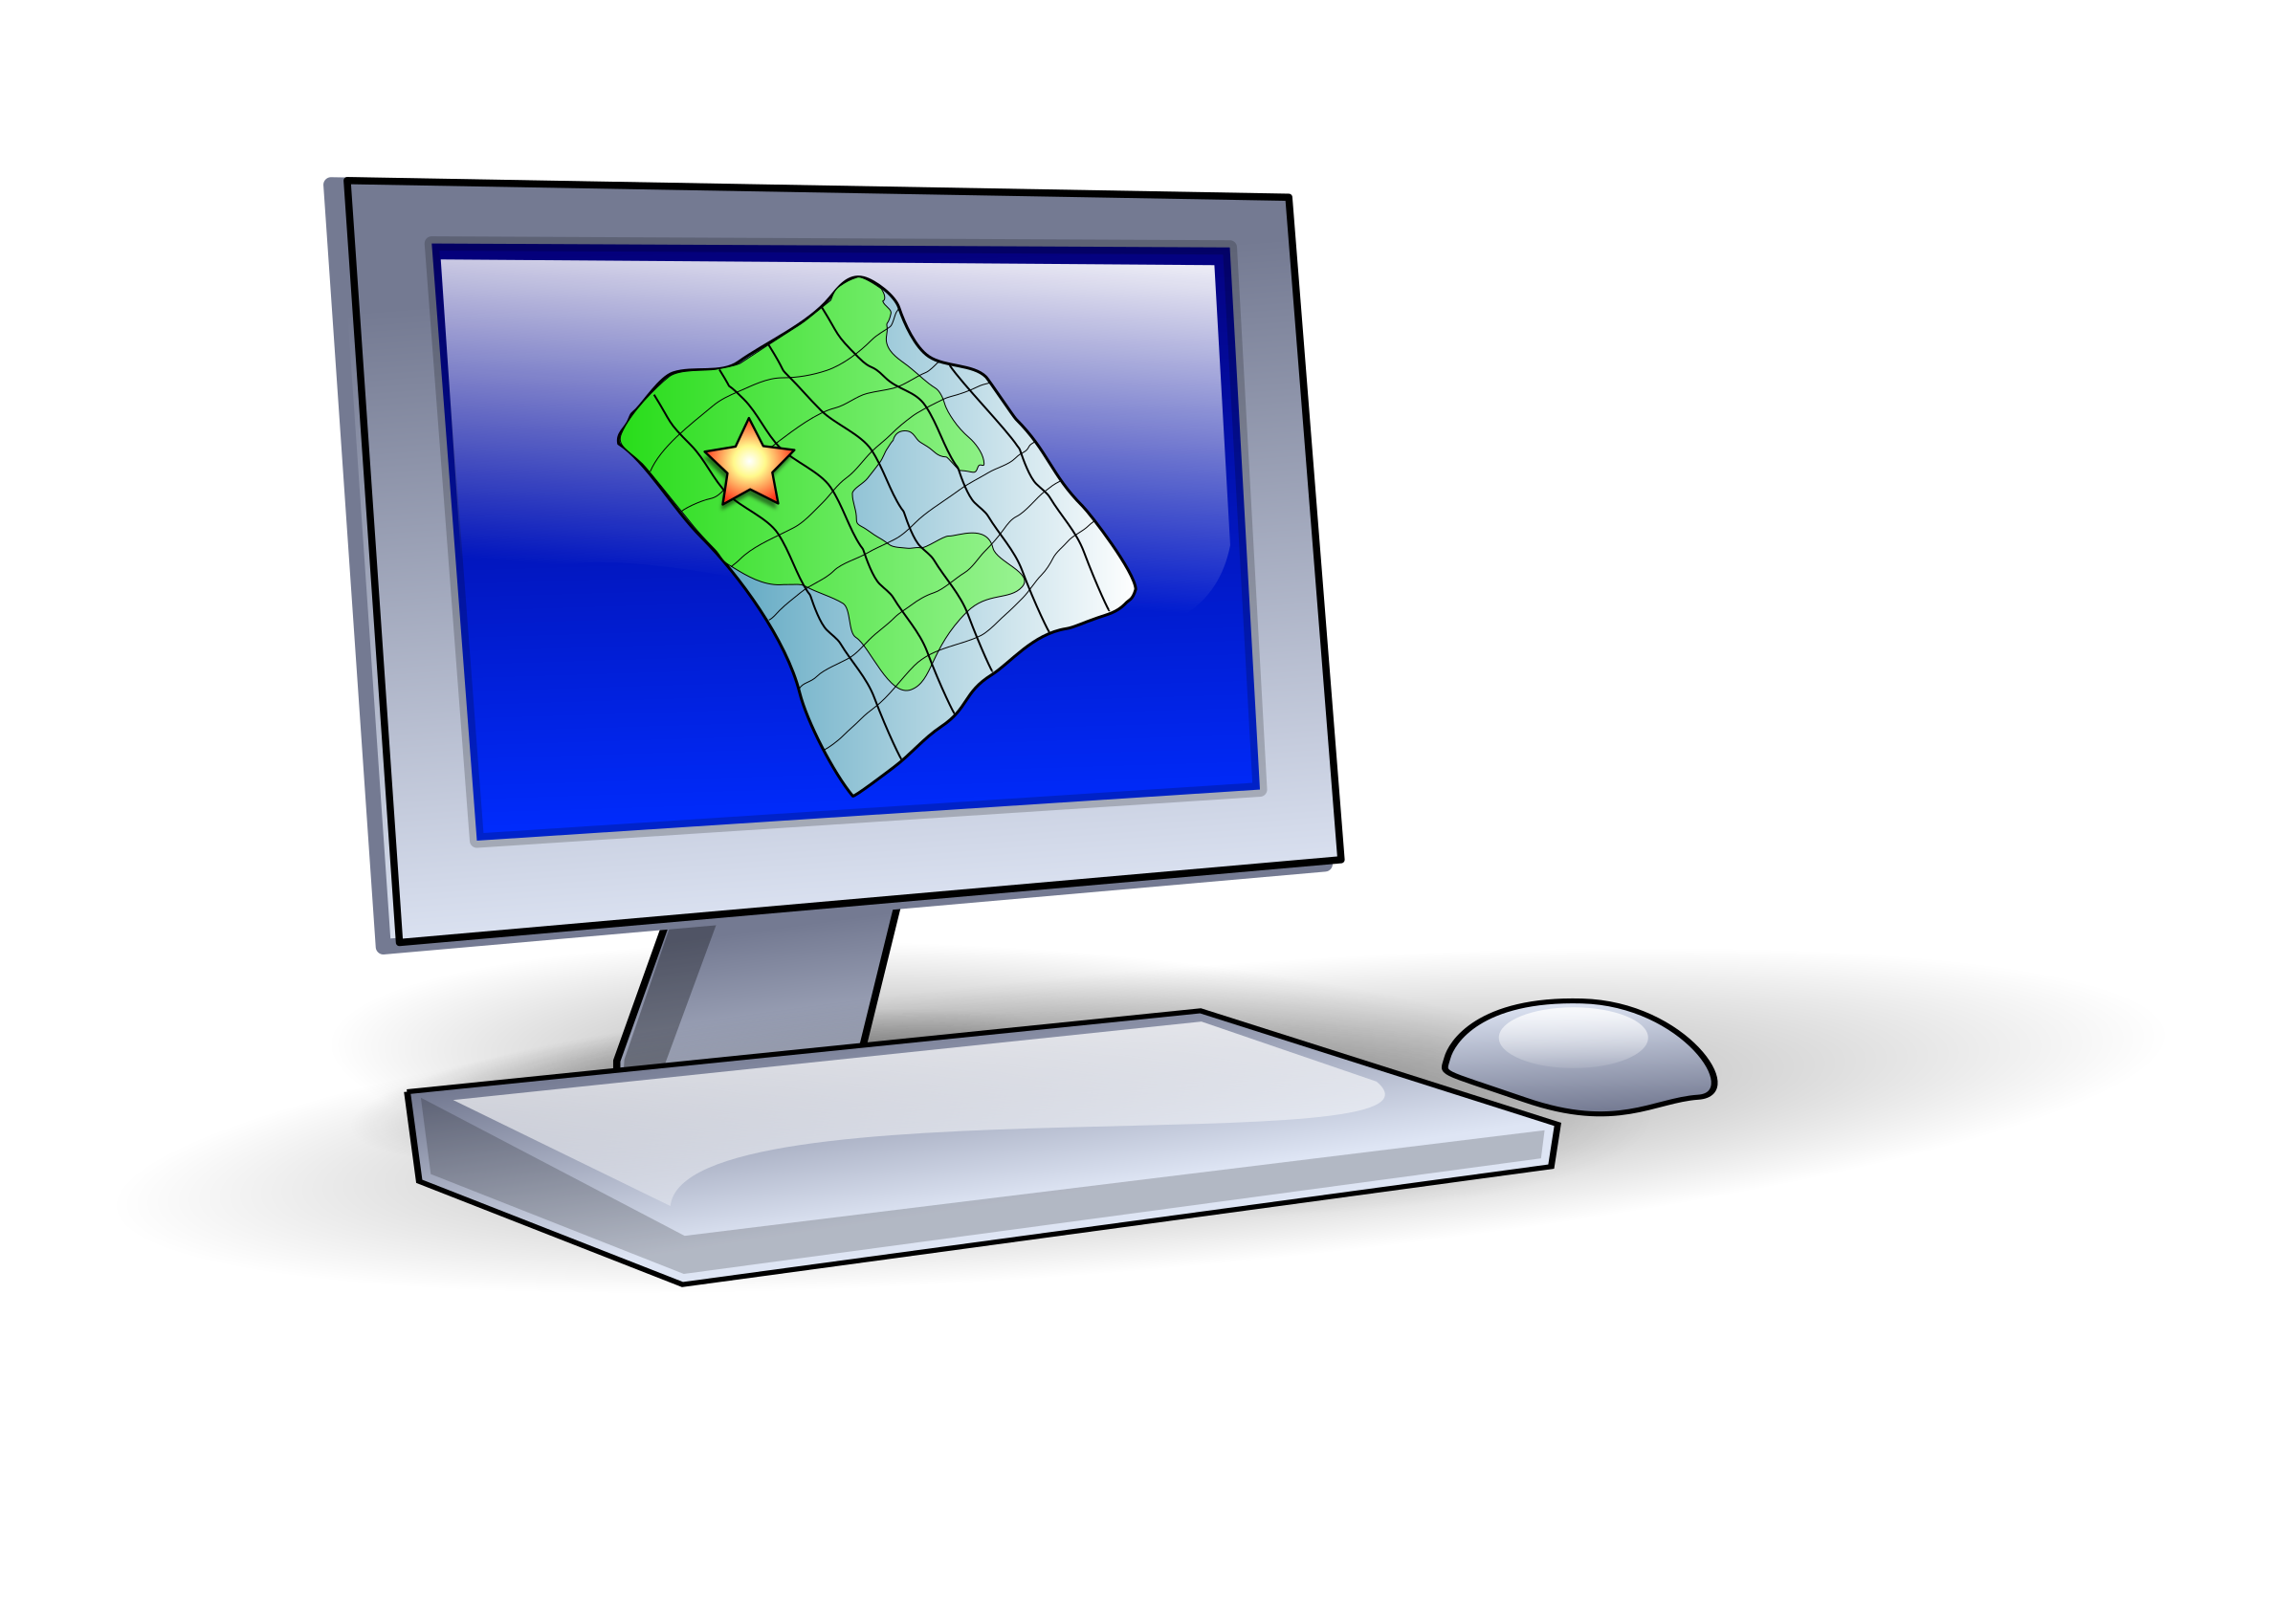 Thin Mapping Client by LindsayBradford